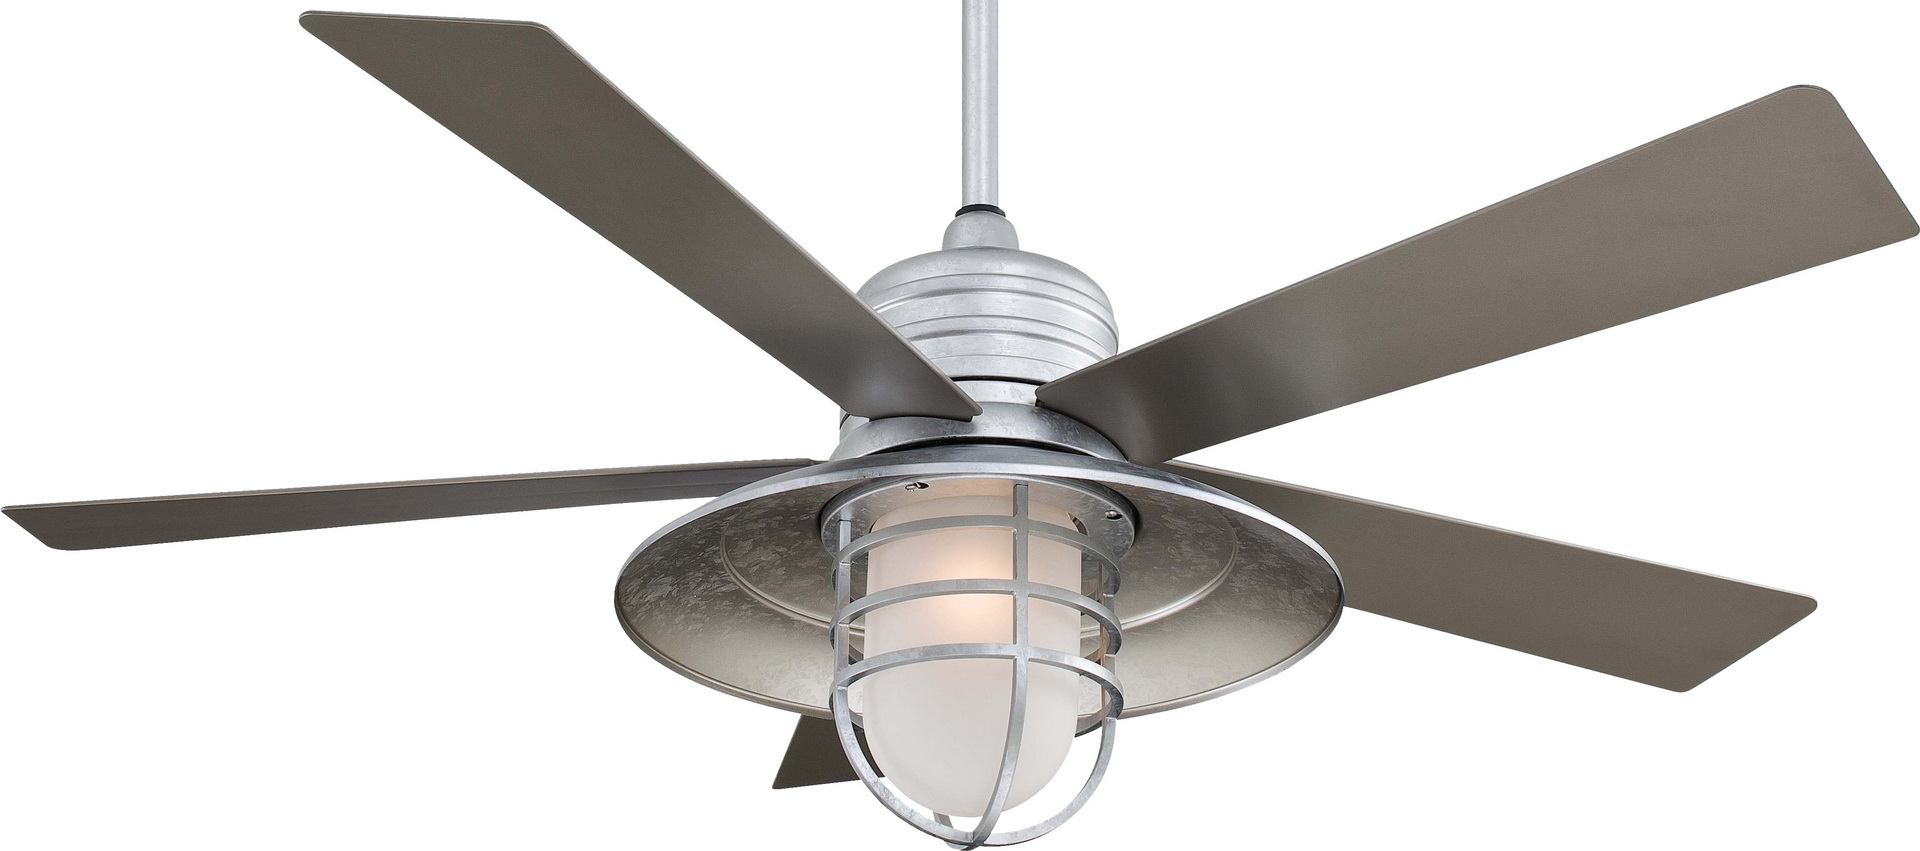 Large Industrial Fans : Top large industrial ceiling fans warisan lighting